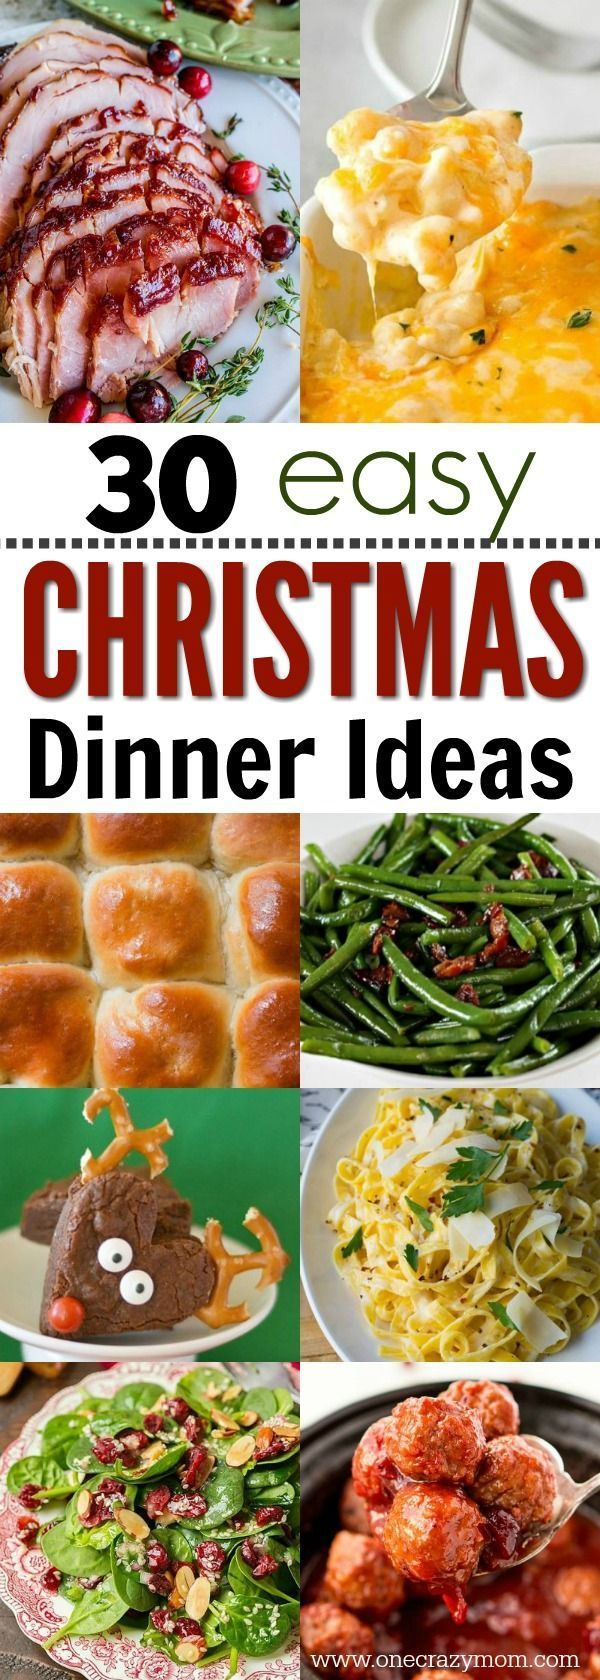 Christmas Dinner Ideas - 30 Christmas Menu Ideas #dinnerrecipesforfamilymaindishes